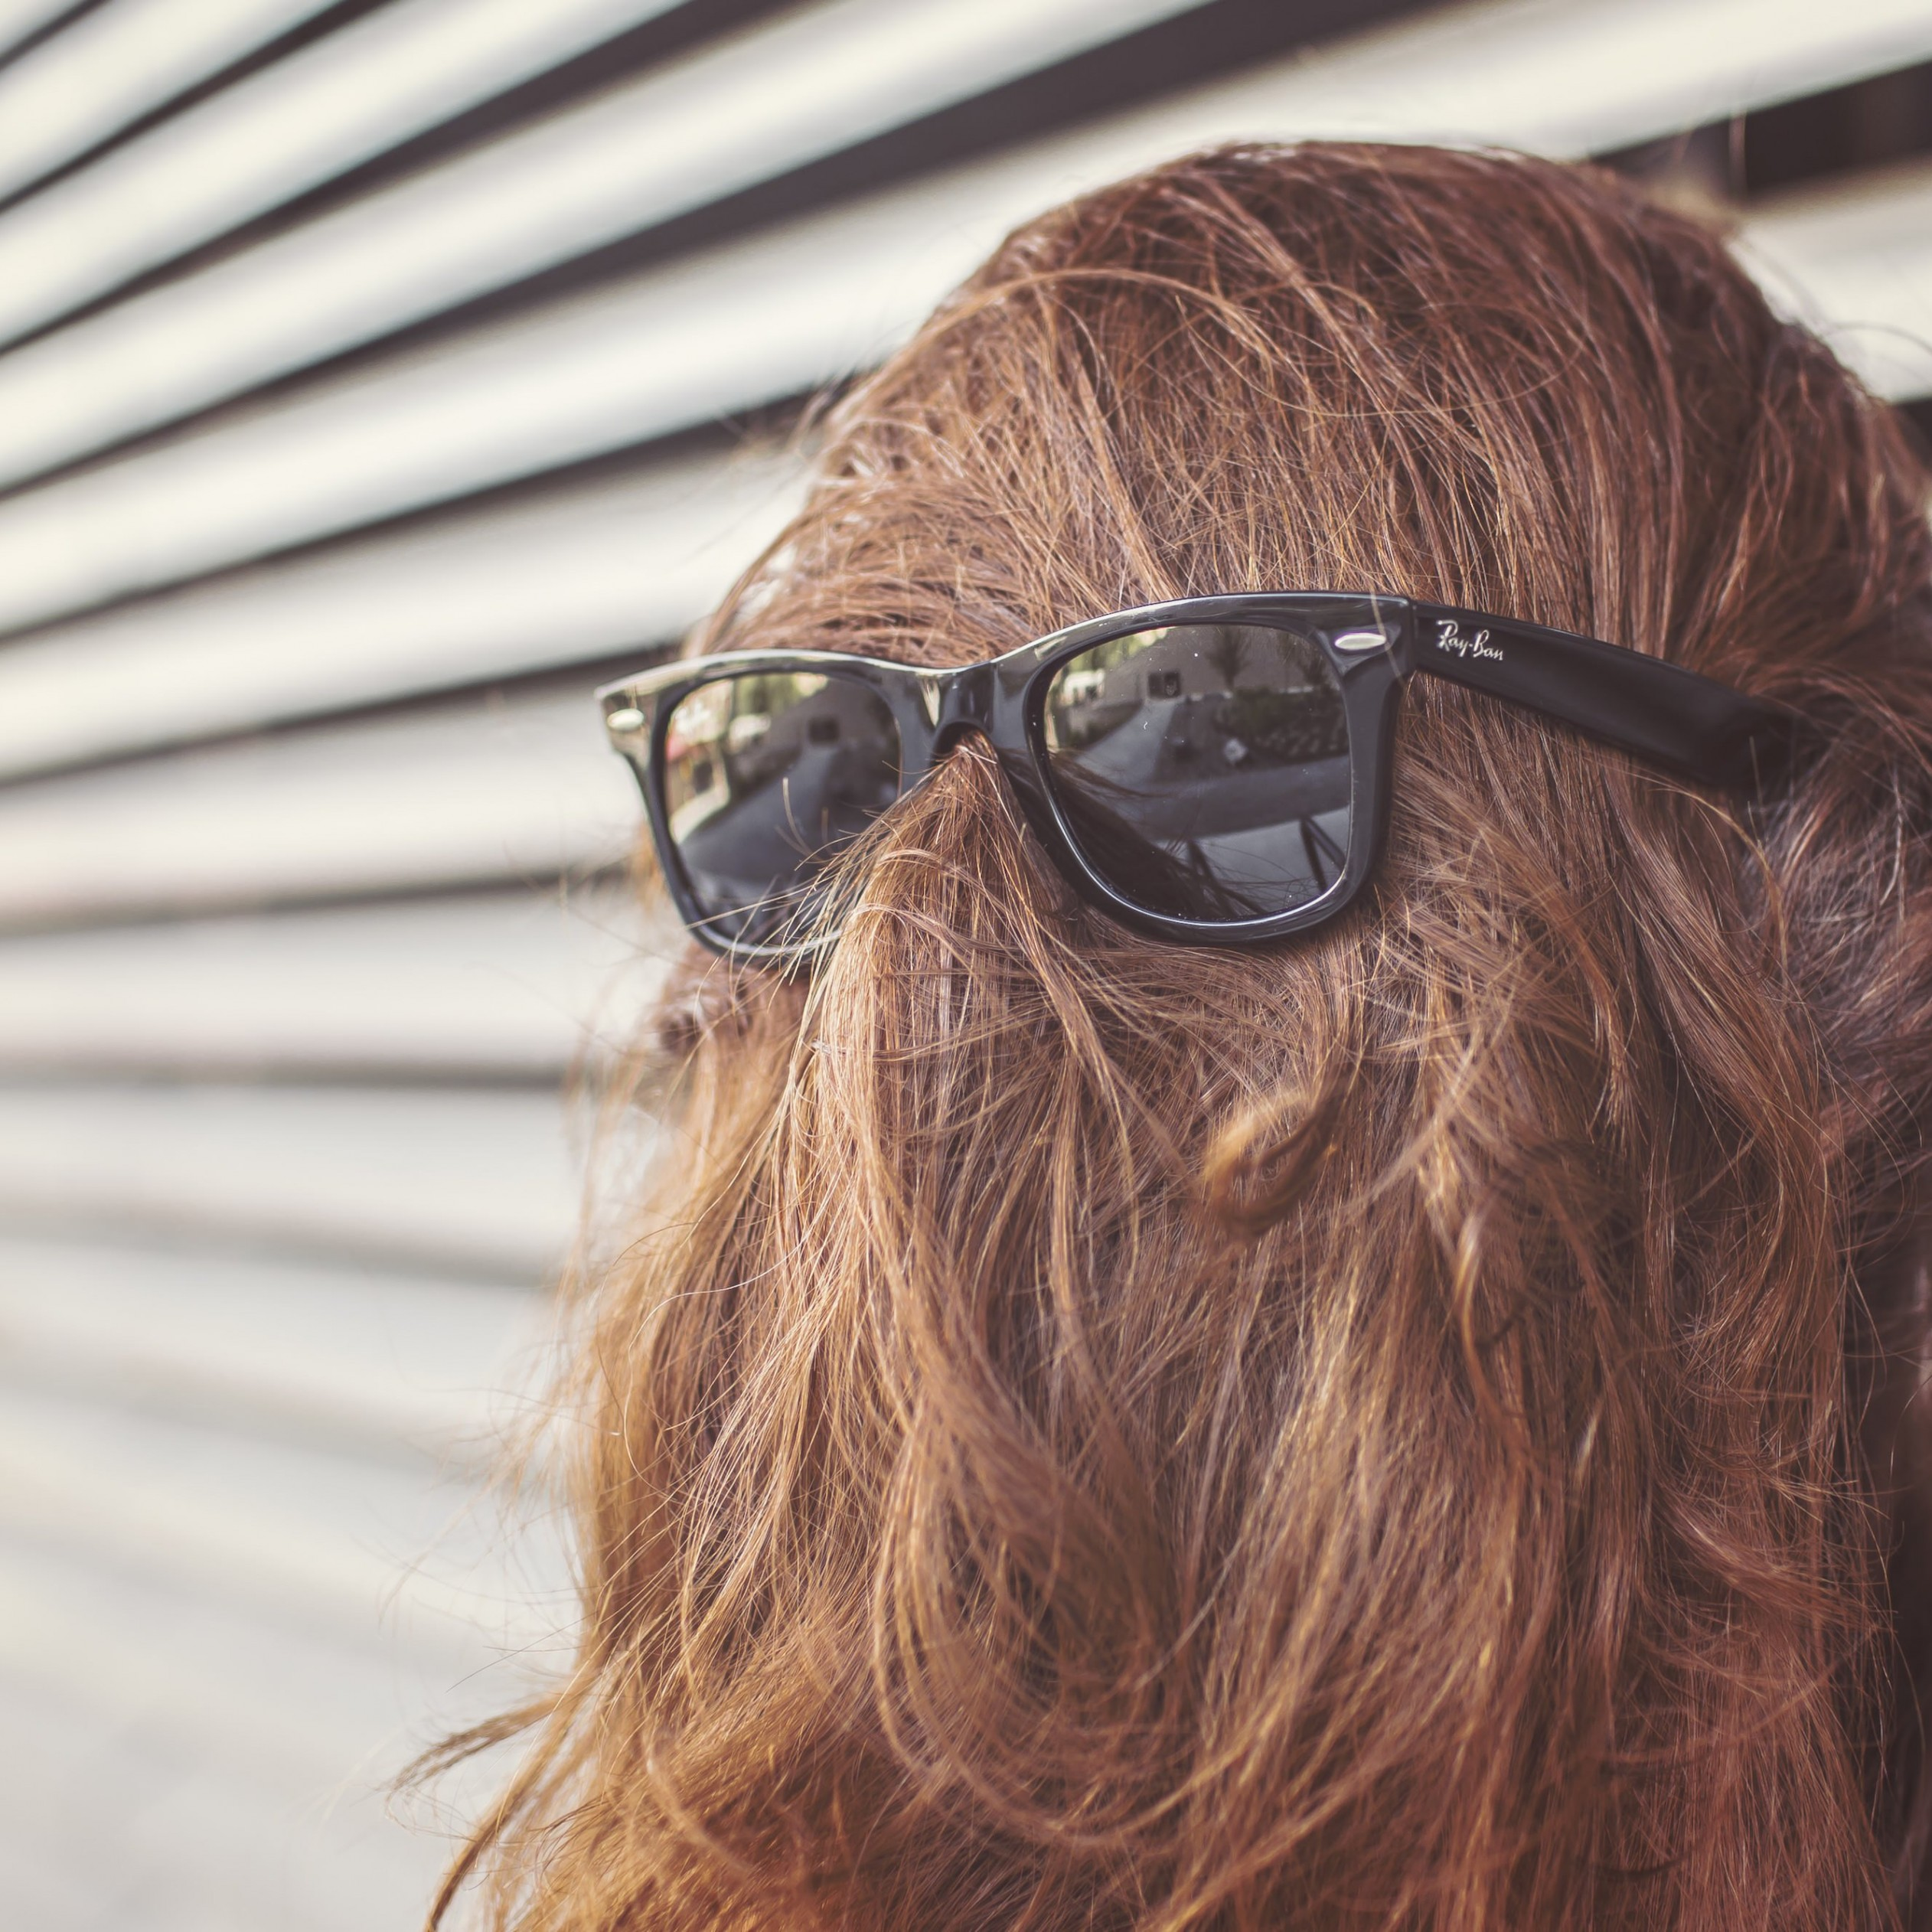 Chewbacca Girl Wallpaper for Apple iPad 4